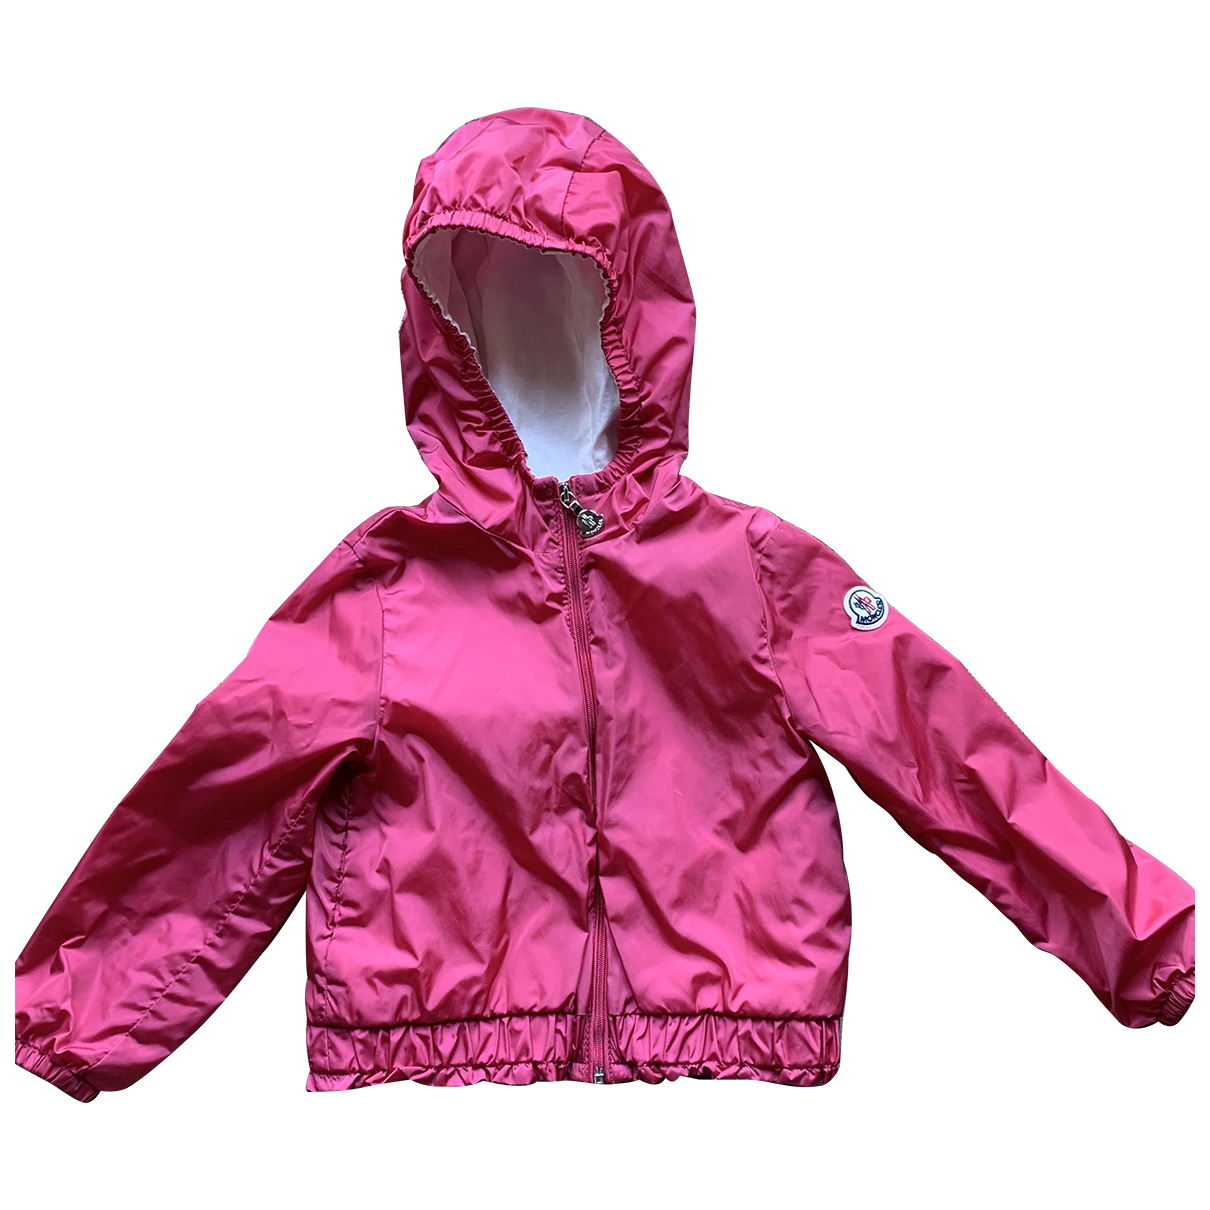 Moncler N Pink jacket & coat for Kids 3 years - until 39 inches UK